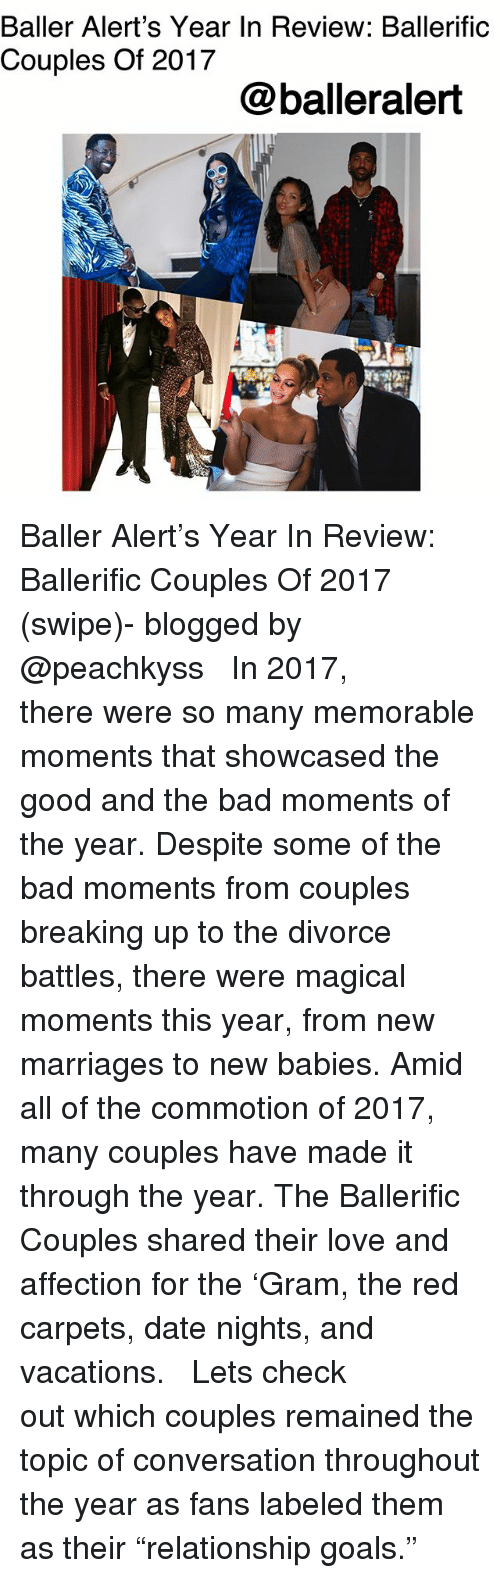 """baller alert: Baller Alert's Year In Review: Ballerific  Couples Of 2017  @balleralert Baller Alert's Year In Review: Ballerific Couples Of 2017 (swipe)- blogged by @peachkyss ⠀⠀⠀⠀⠀⠀⠀ ⠀⠀⠀⠀⠀⠀⠀ In 2017, there were so many memorable moments that showcased the good and the bad moments of the year. Despite some of the bad moments from couples breaking up to the divorce battles, there were magical moments this year, from new marriages to new babies. Amid all of the commotion of 2017, many couples have made it through the year. The Ballerific Couples shared their love and affection for the 'Gram, the red carpets, date nights, and vacations. ⠀⠀⠀⠀⠀⠀⠀ ⠀⠀⠀⠀⠀⠀⠀ Lets check out which couples remained the topic of conversation throughout the year as fans labeled them as their """"relationship goals."""""""